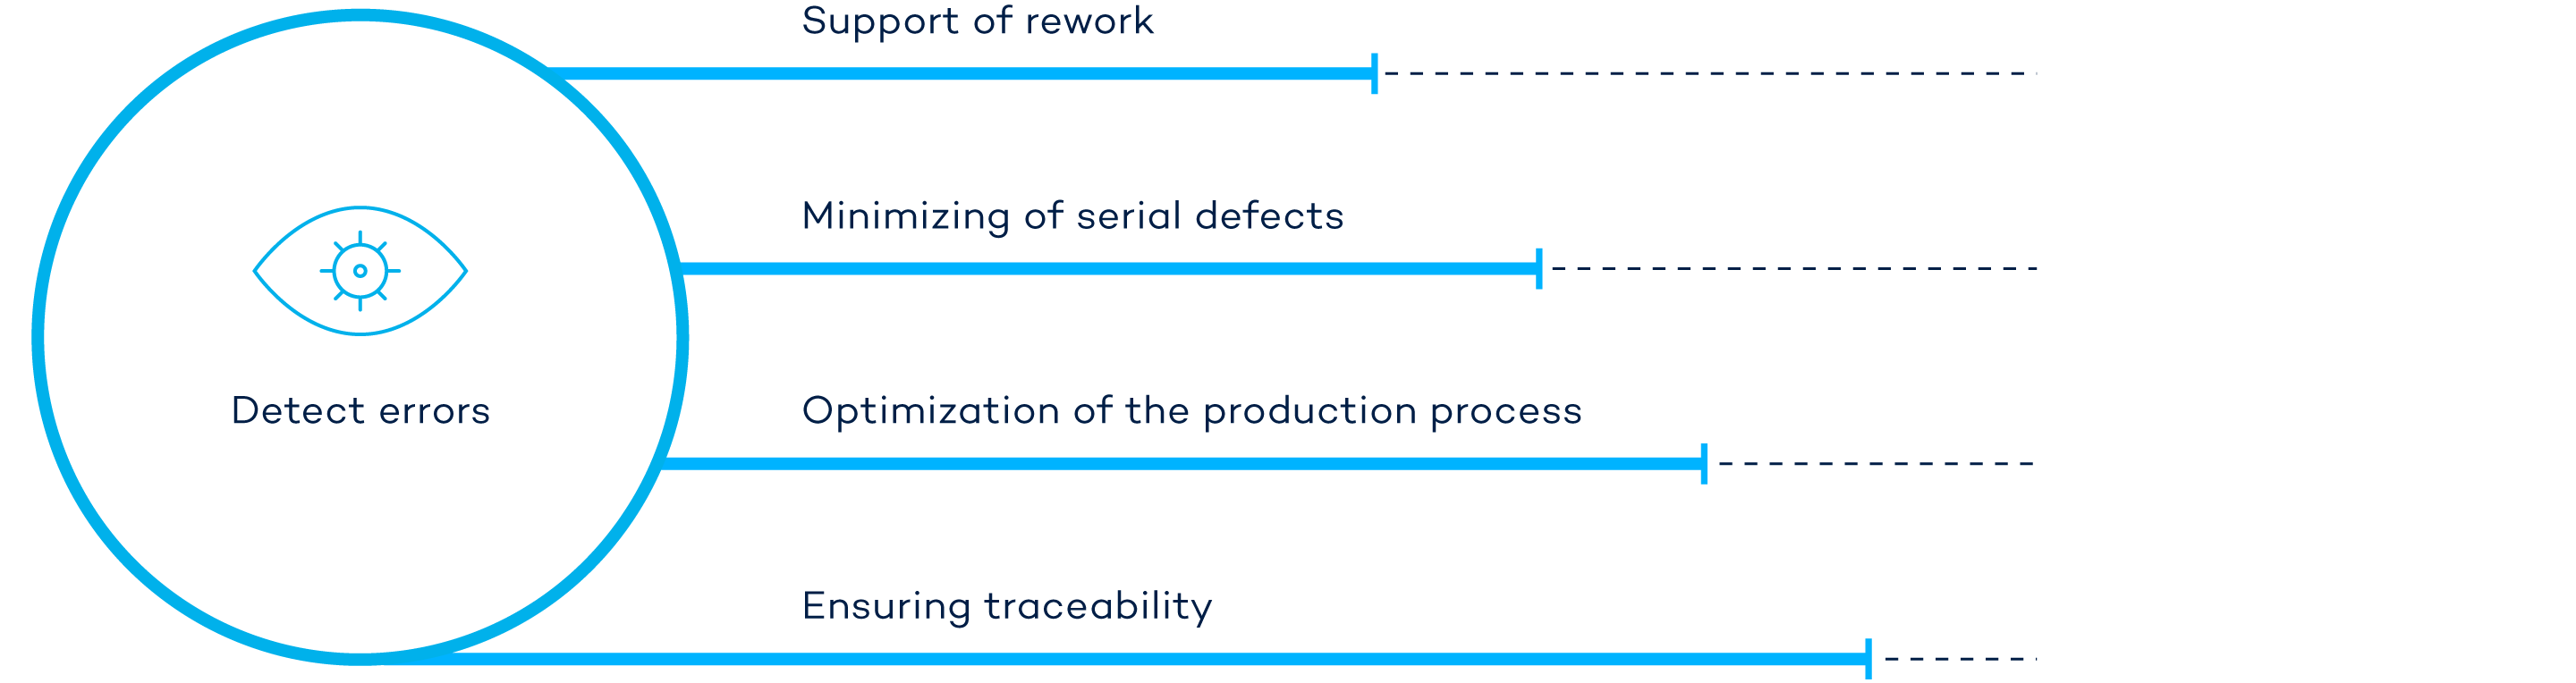 The infographic shows the process optimizations enabled by data analysis in VINSPEC systems.